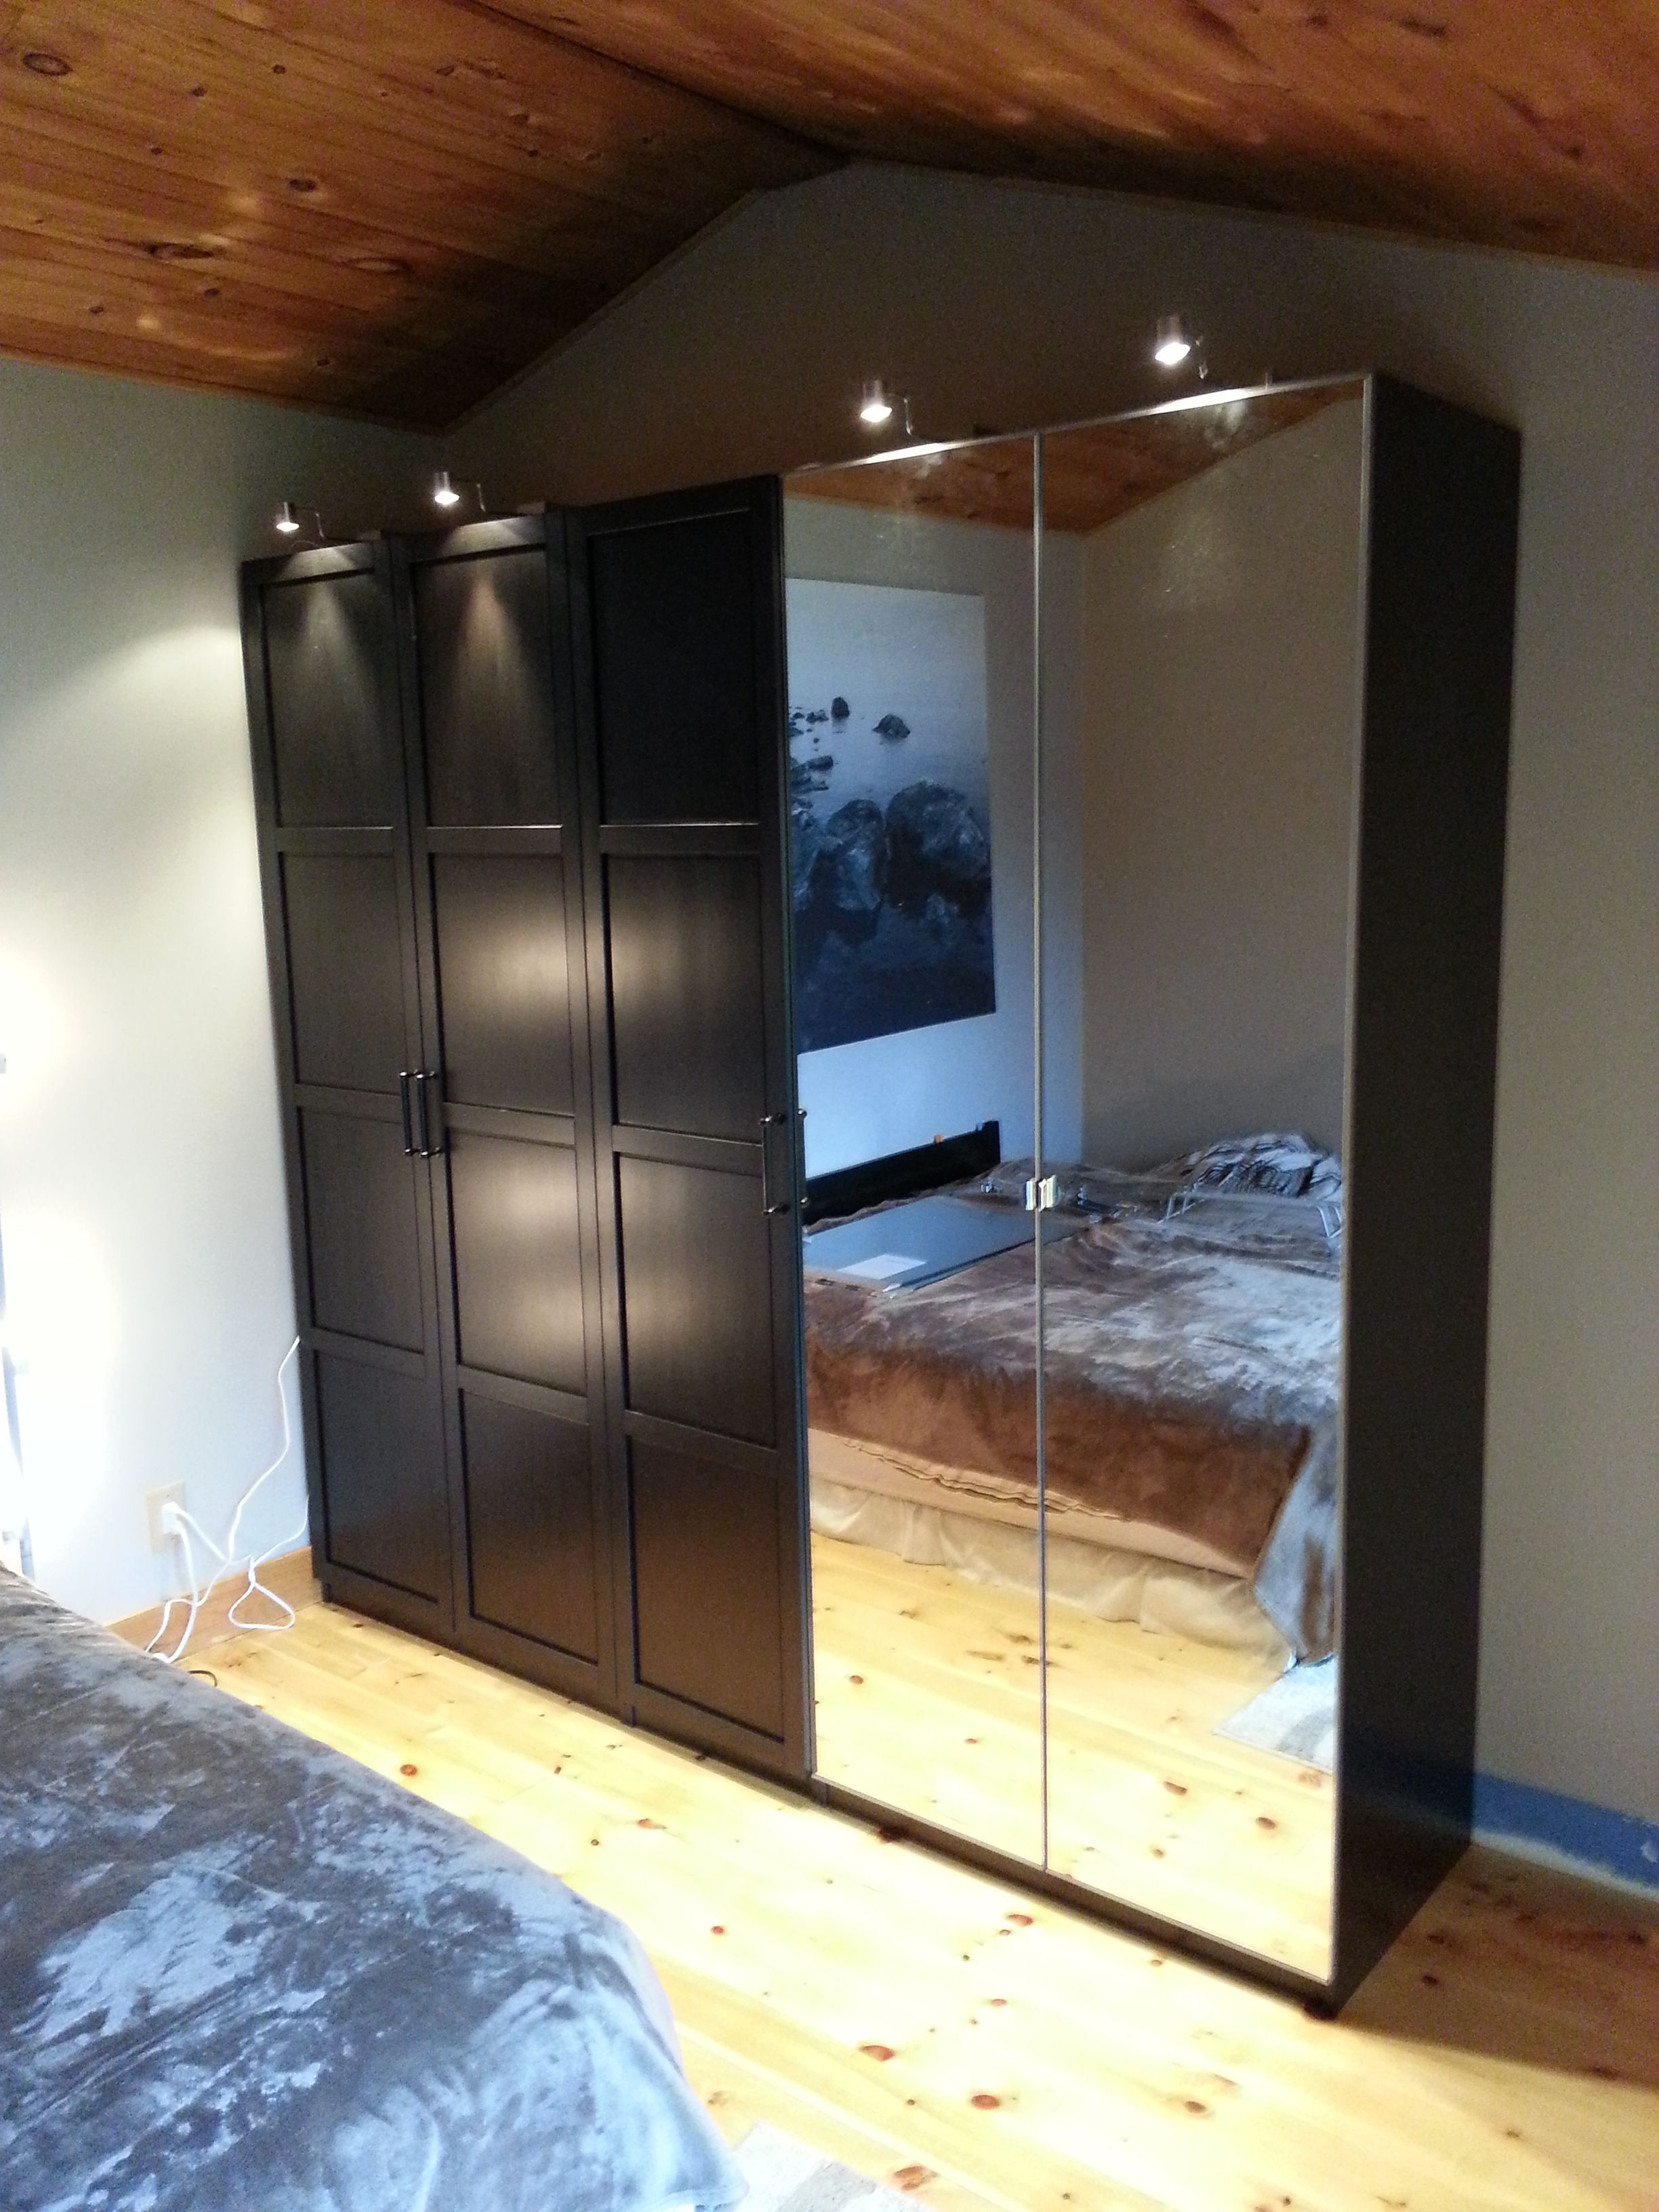 ikea pax wardrobe home renovation pinterest. Black Bedroom Furniture Sets. Home Design Ideas